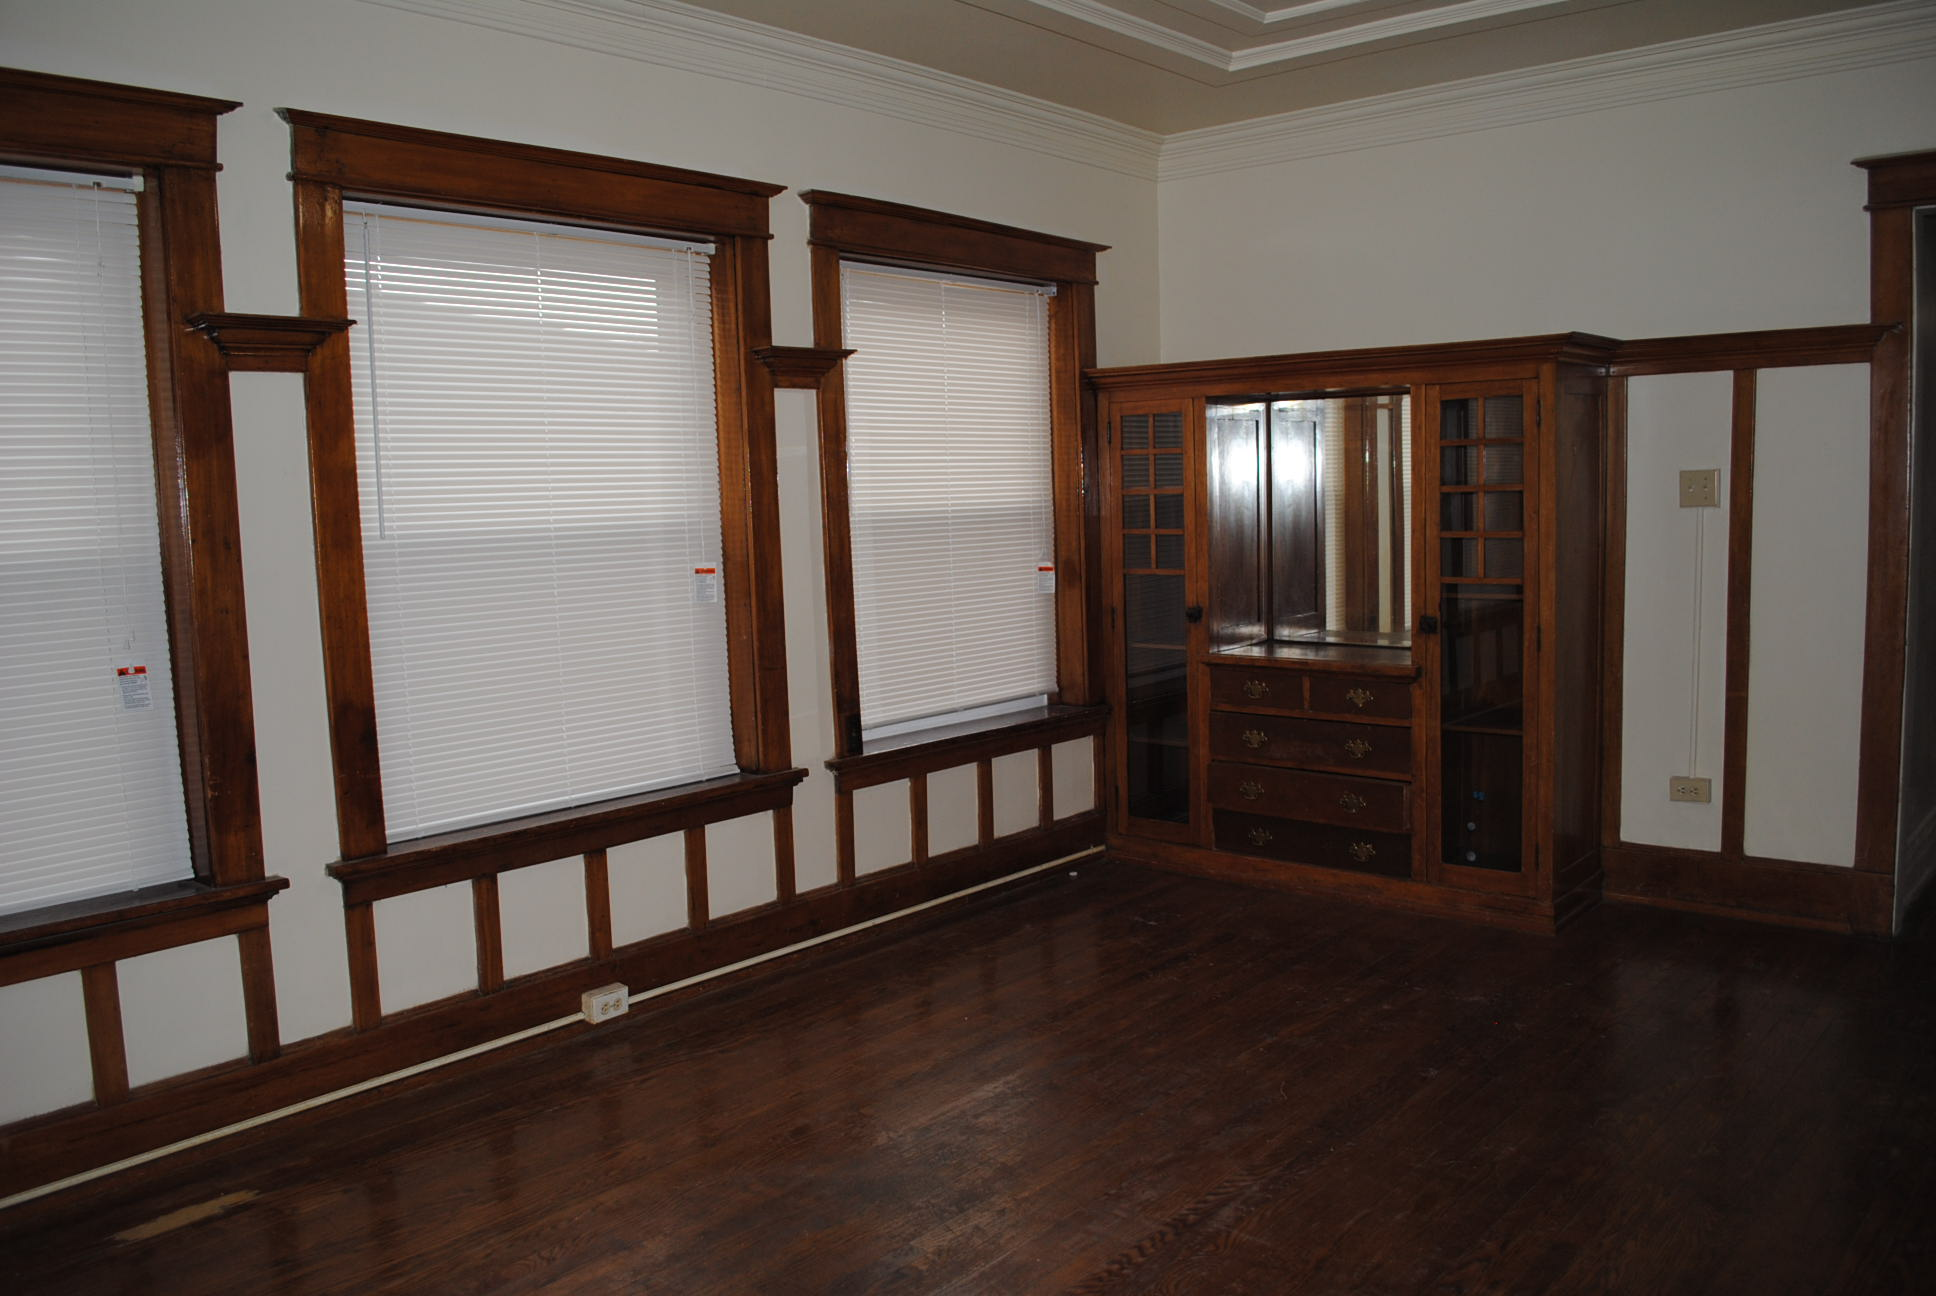 The%20maine_inside_2bdrm_lr